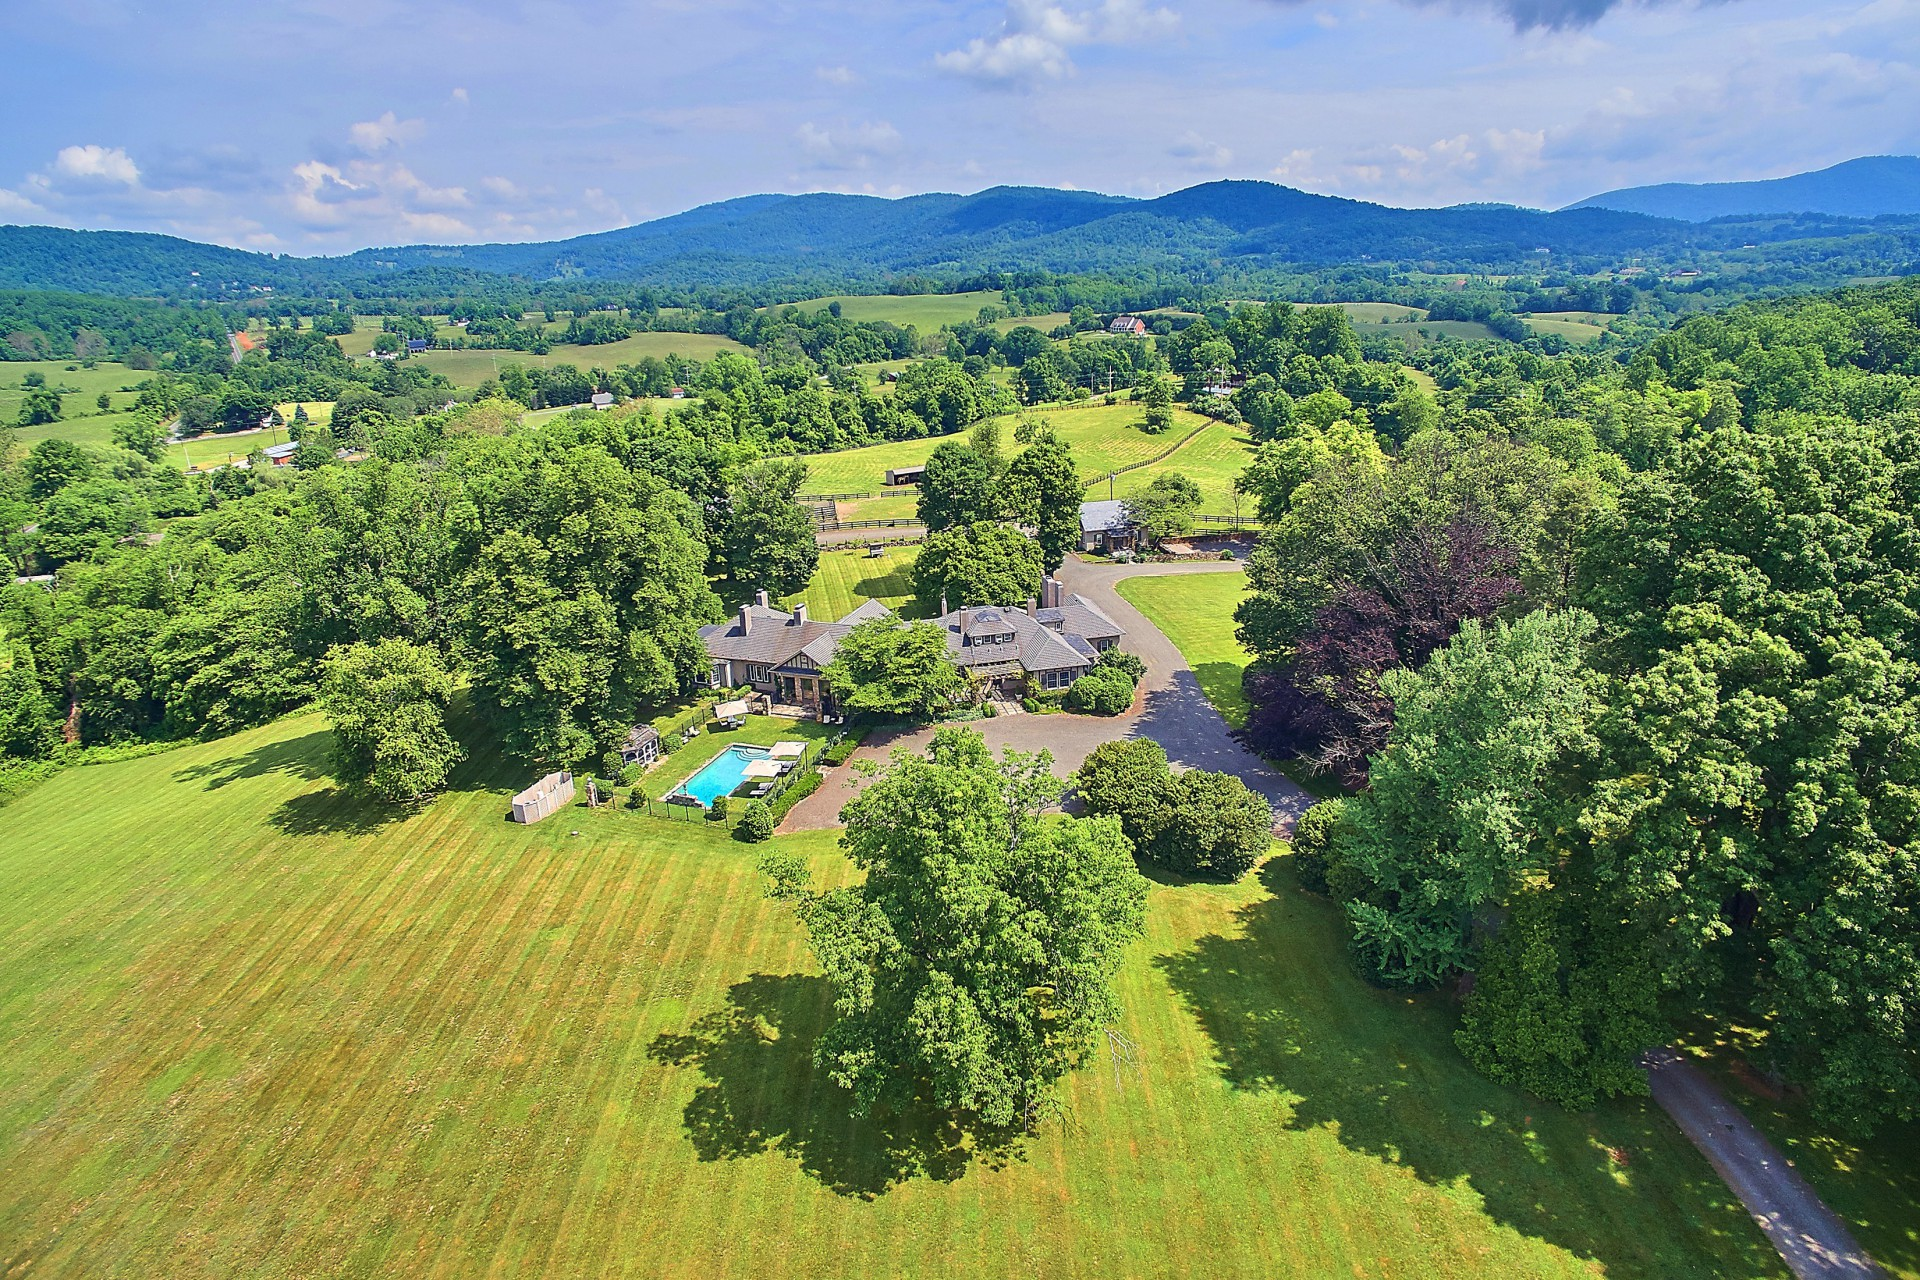 Villa per Vendita alle ore Glen Gordon Manor 1482 Zachary Taylor Hwy. Huntly, Virginia, 22640 Stati Uniti